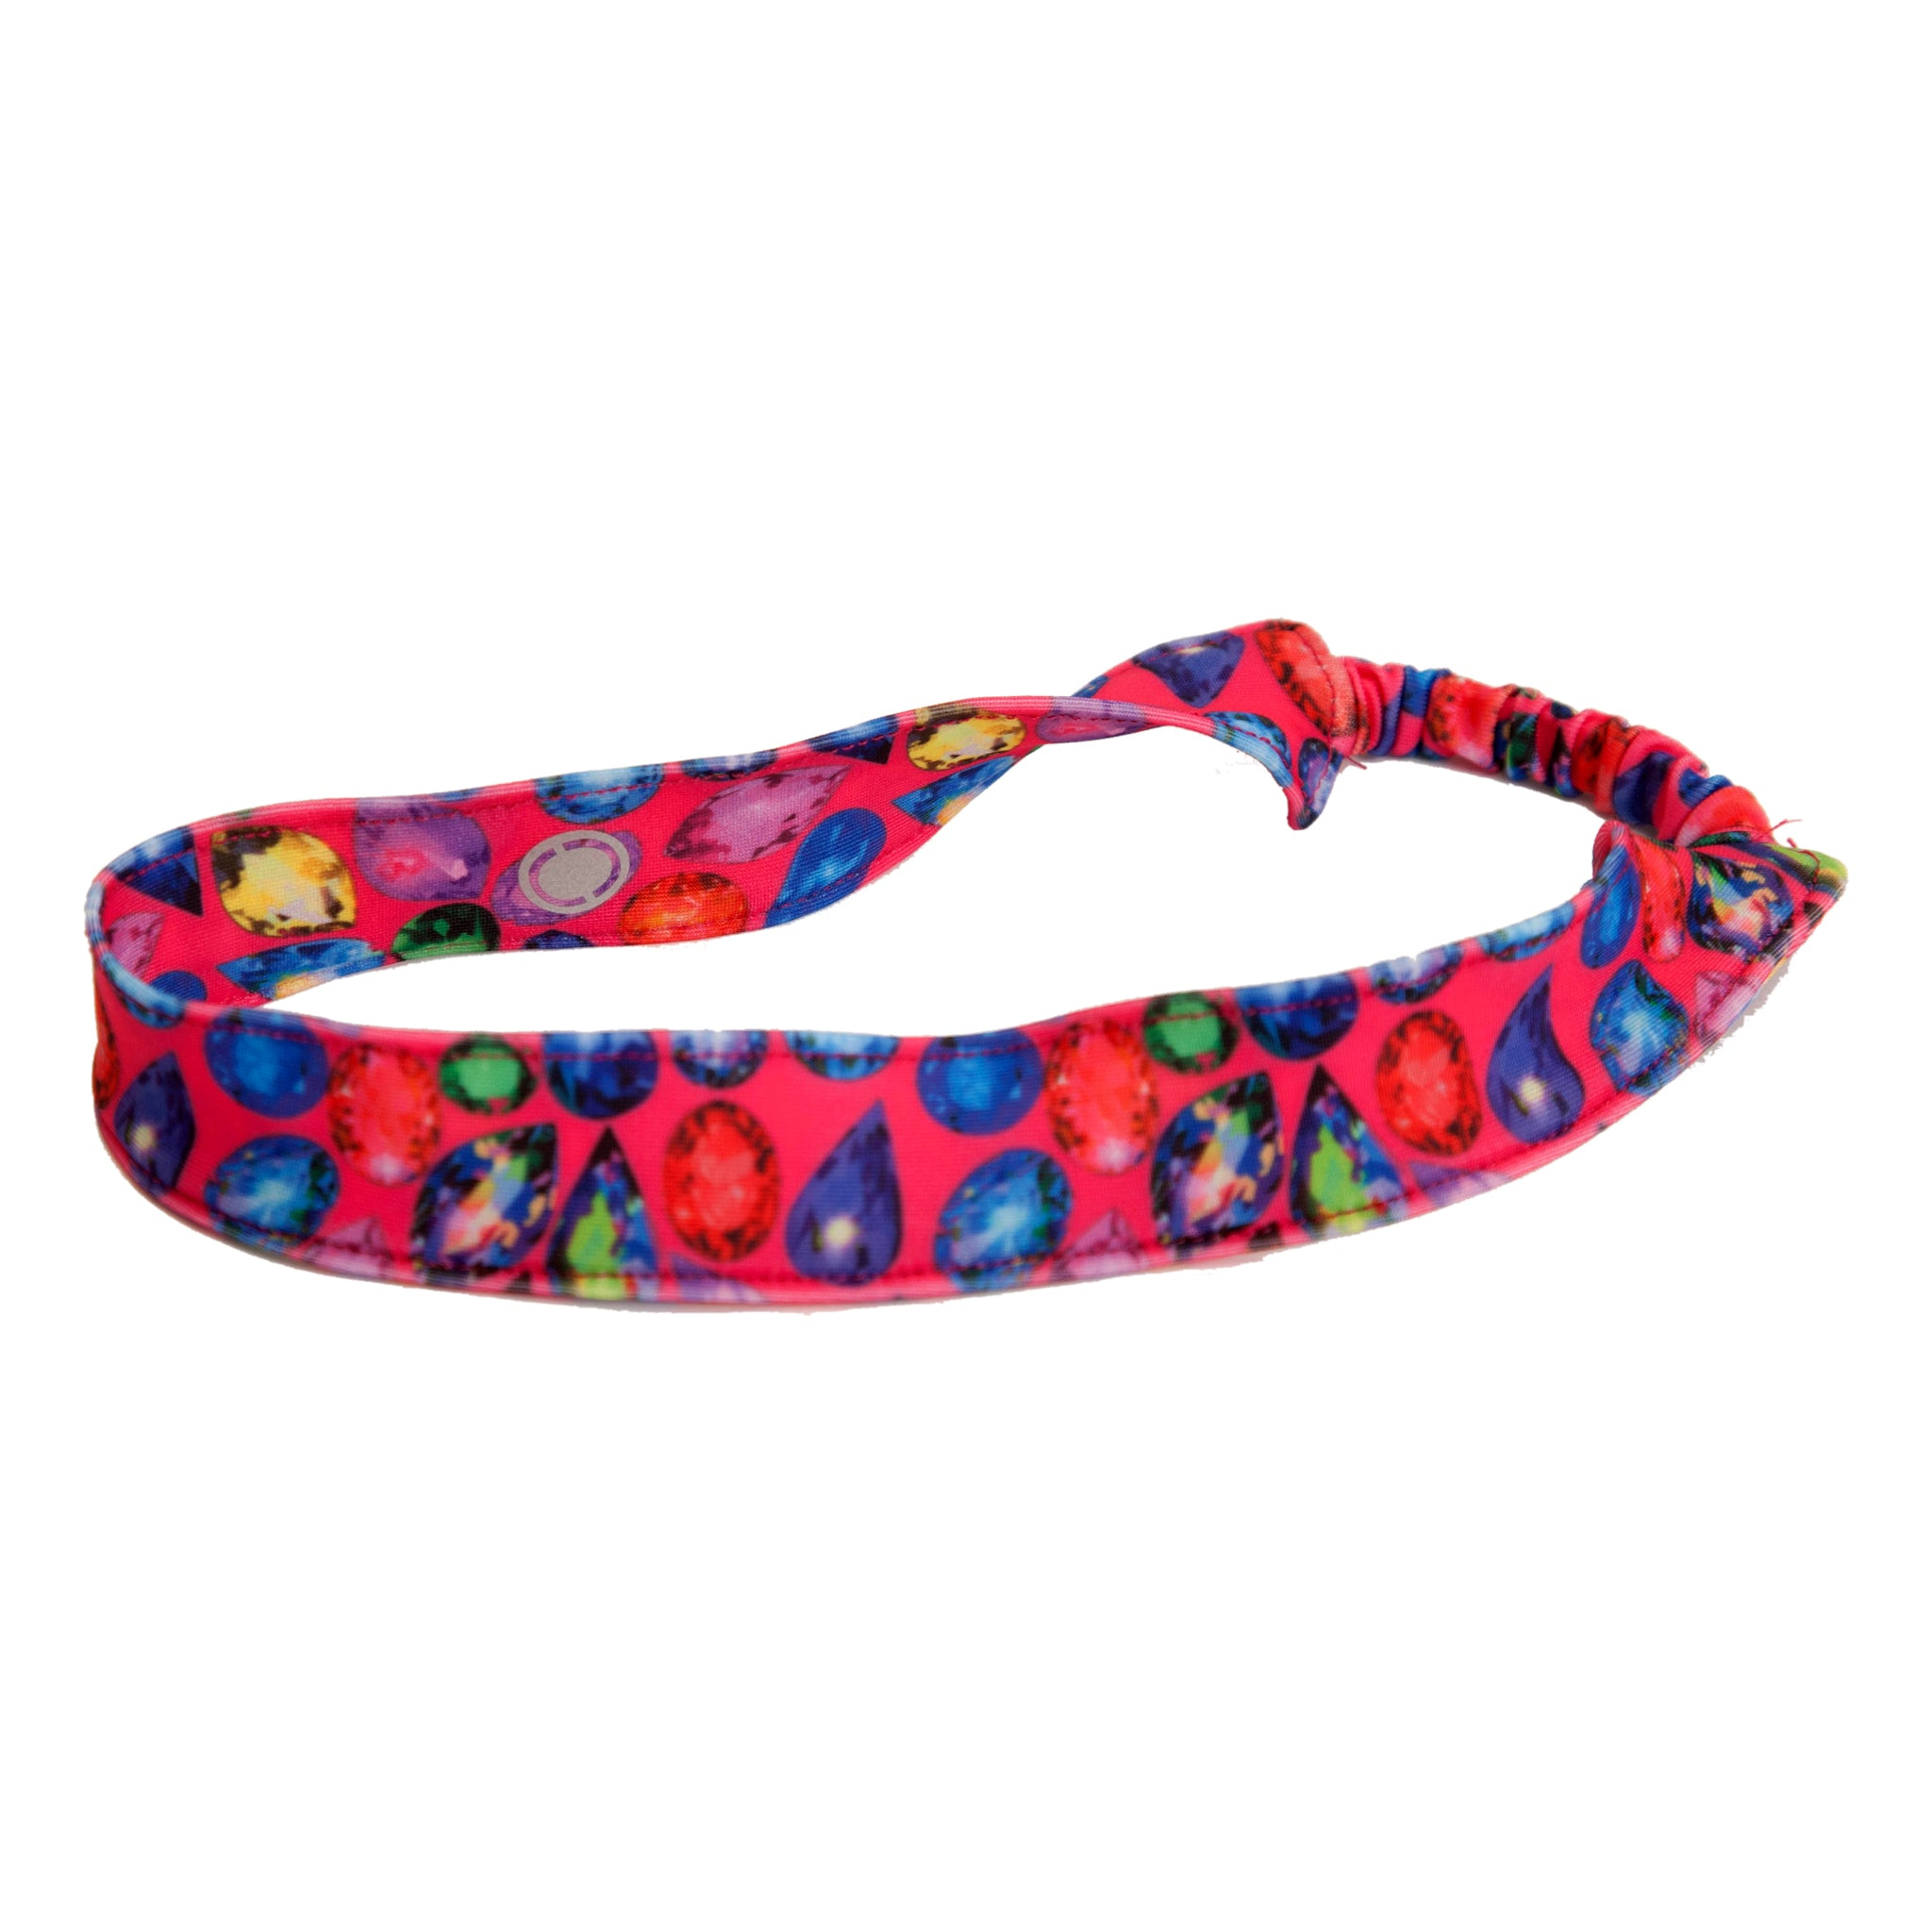 We love this baby girl headband with a pretty jewels pattern. One-size headband also fits toddler girls and older girls. Great for a trip to the beach, pool, or year-round!